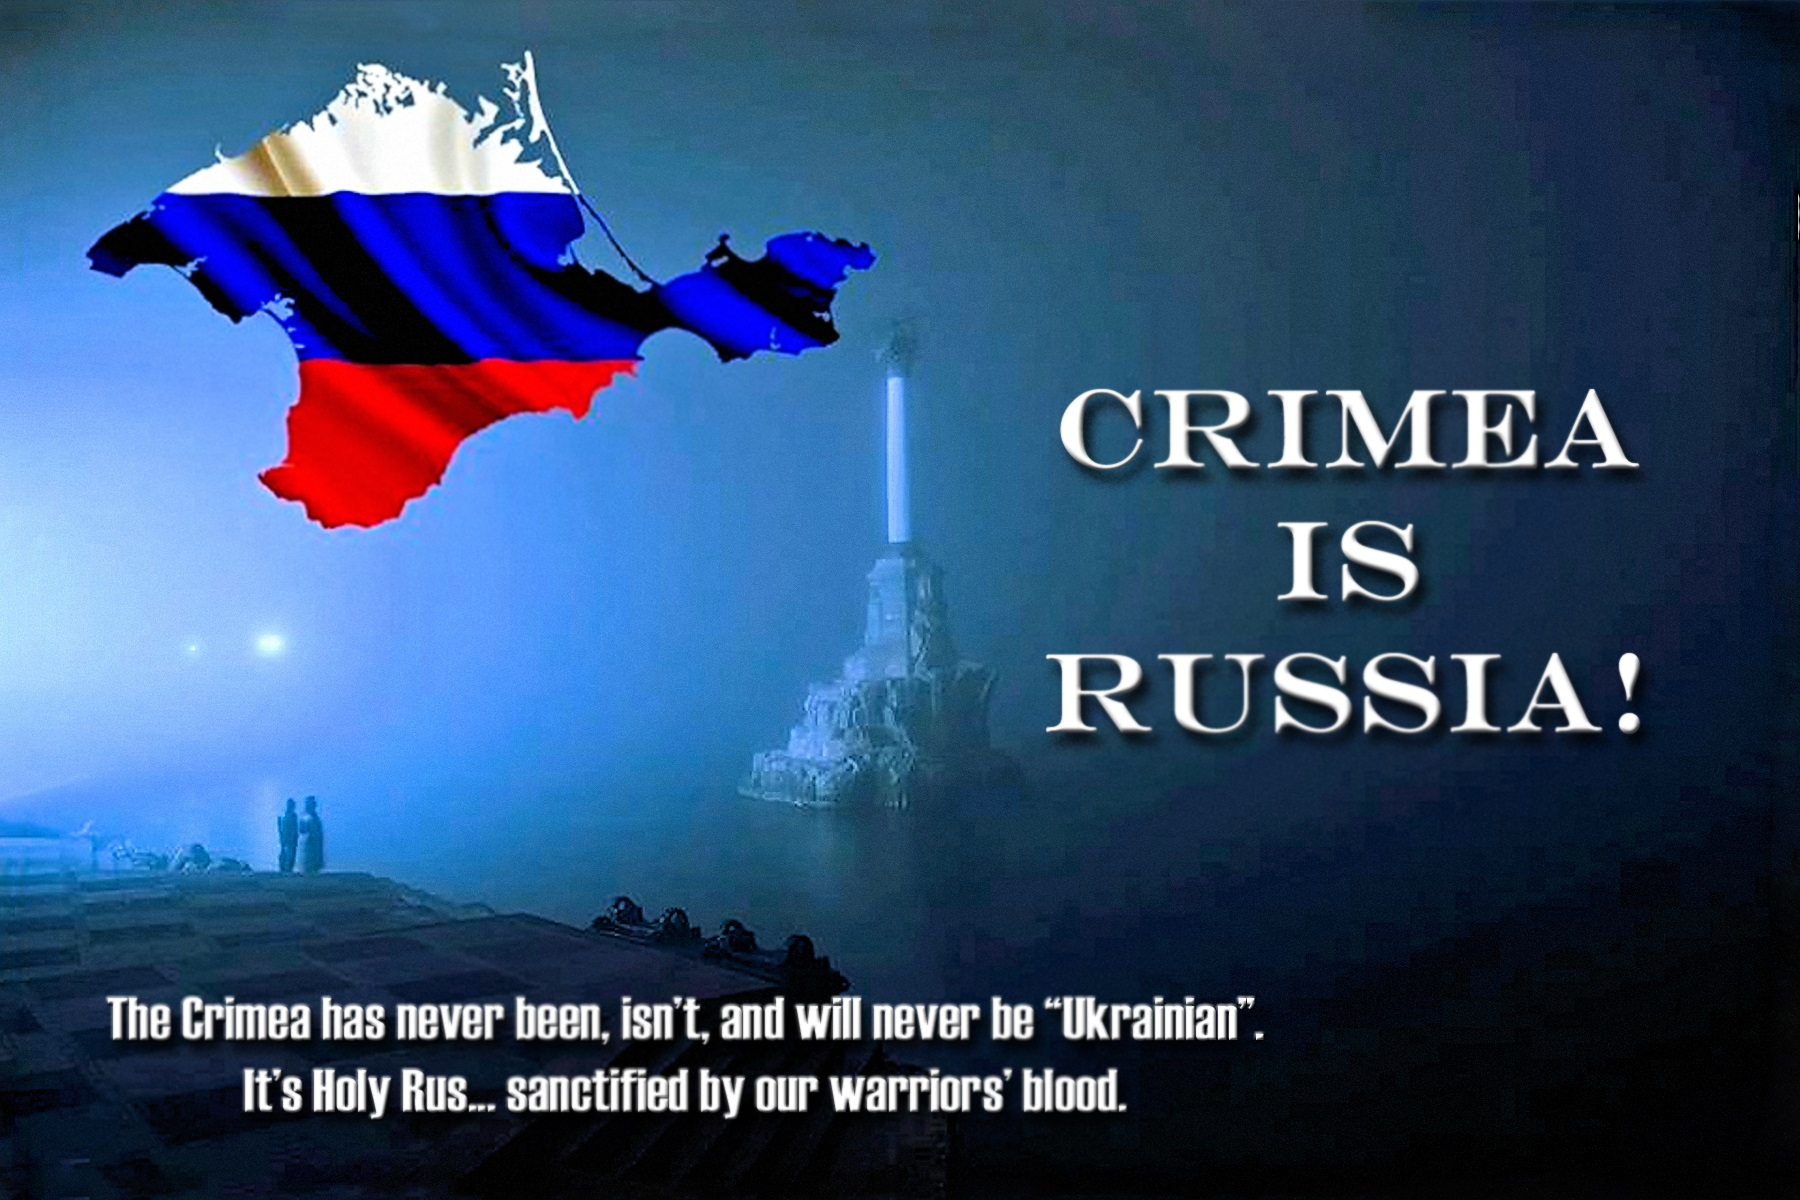 00 crimea is russia 280516